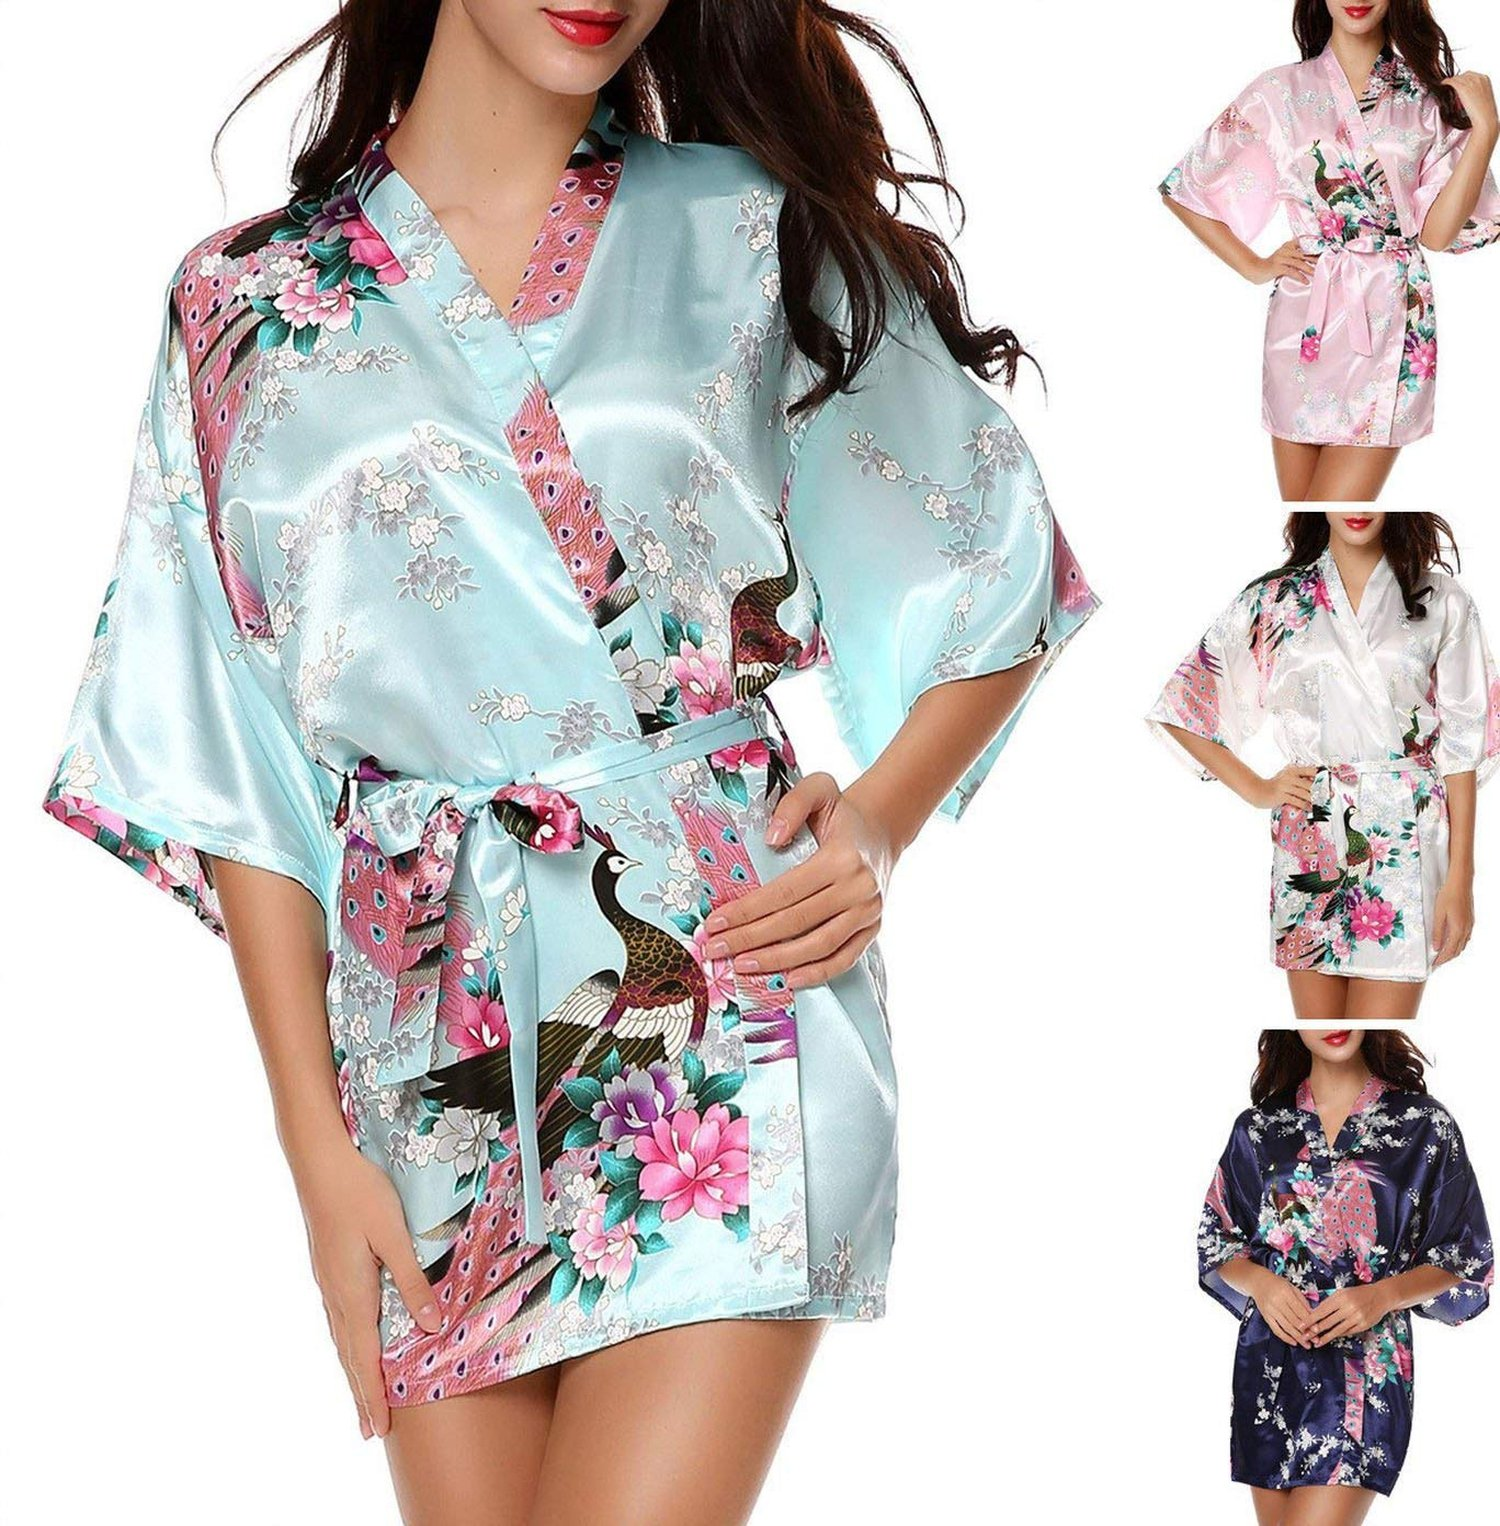 Toping Fine adult-exotic-sleepwear-and-robe-sets Kimono Robe Women's Kimono Robe Peacock Silky Sexy Lace Pattern Silk,Large,White